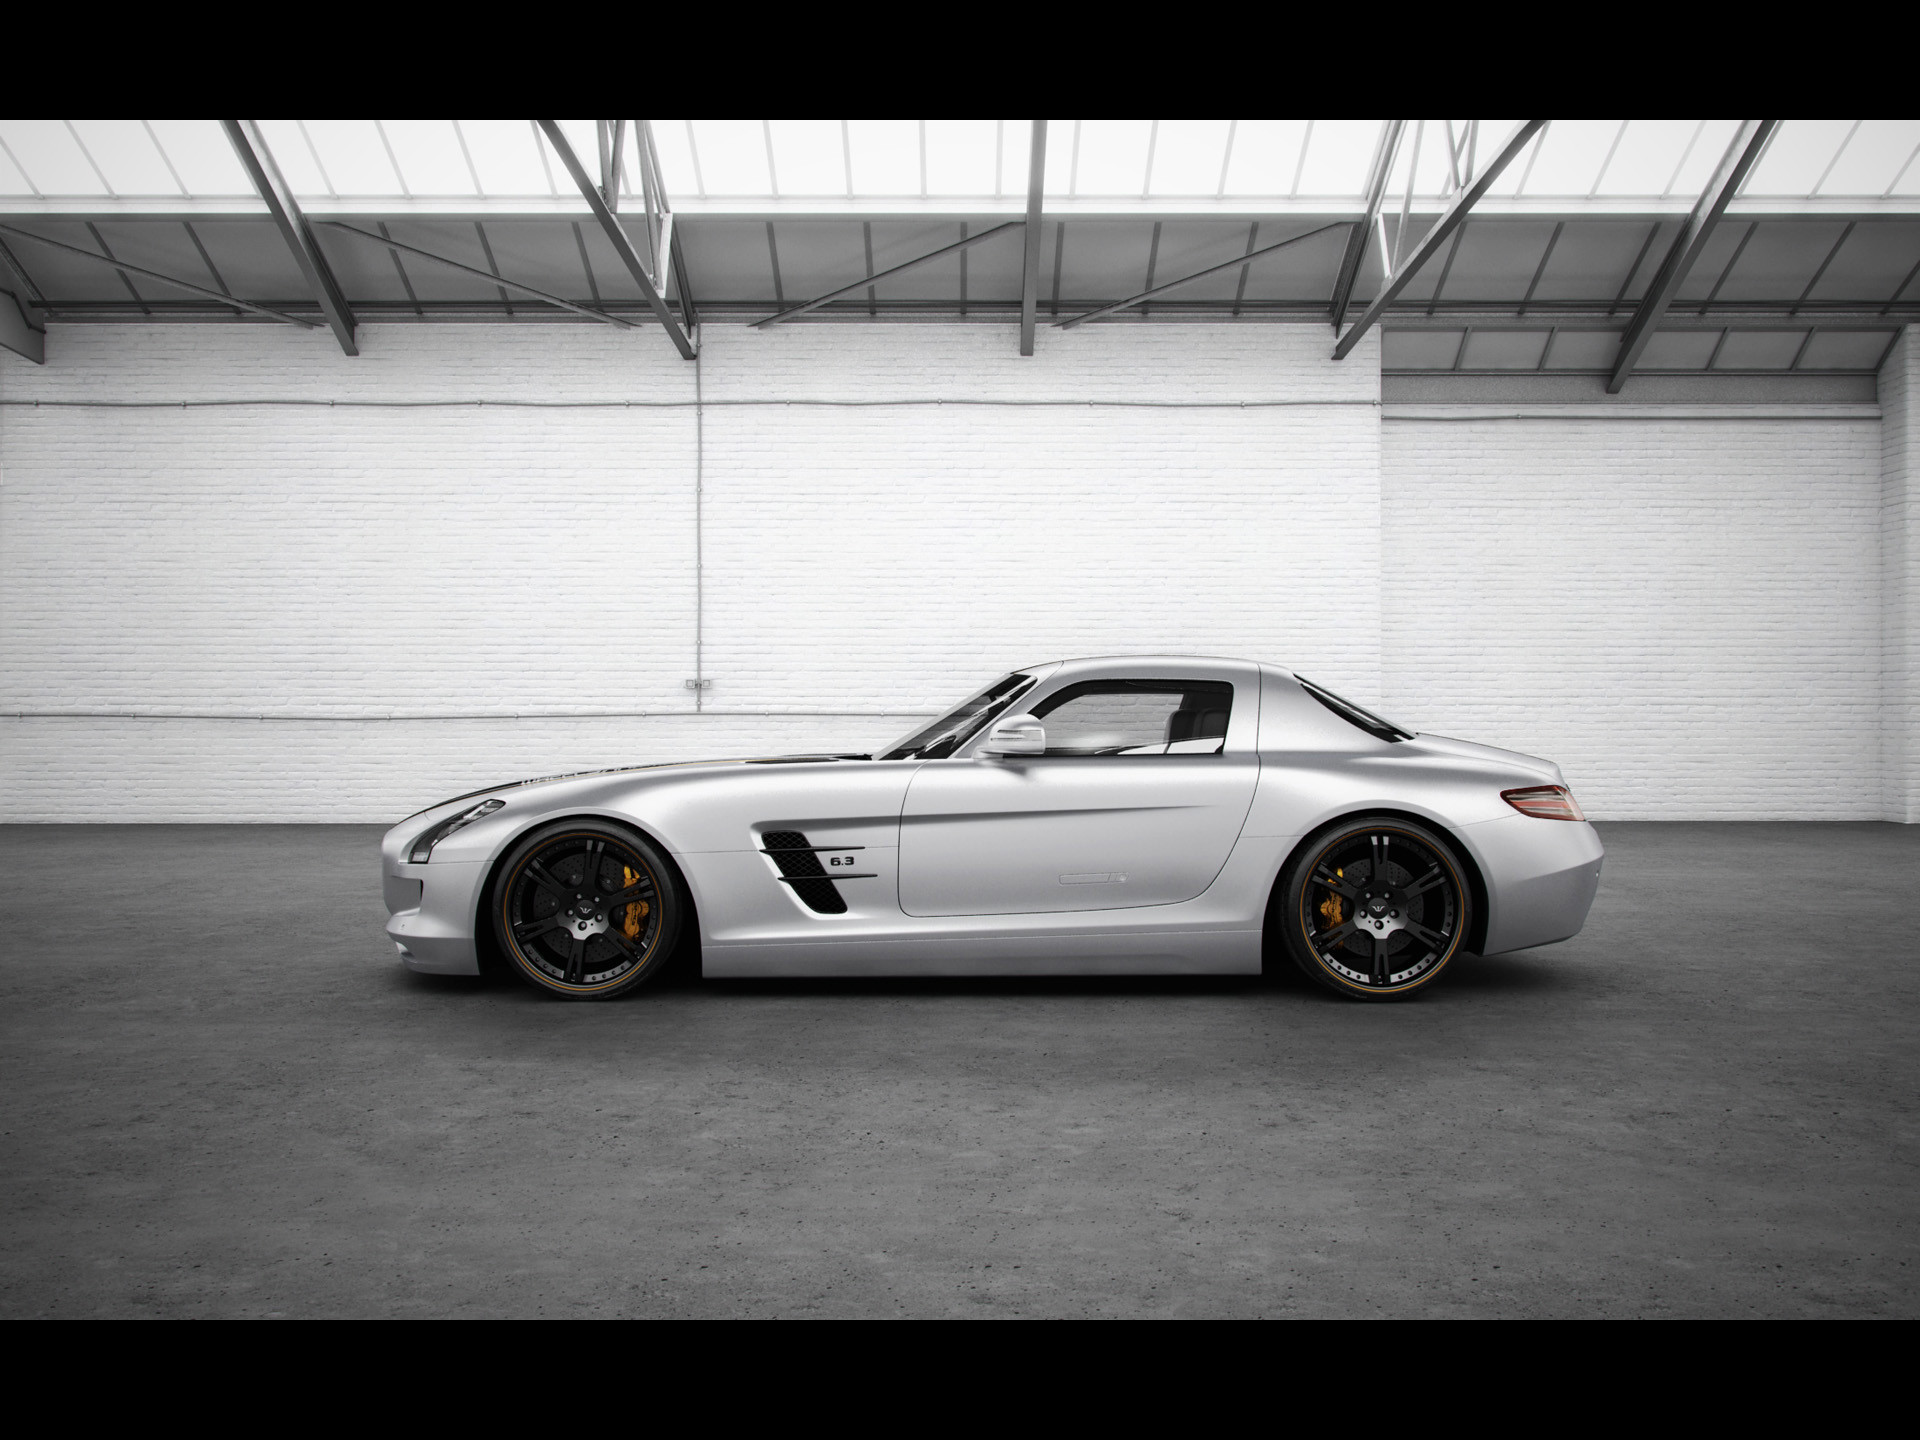 1920x1440 2012 Wheelsandmore Mercedes-Benz SLS AMG Silver Wing - Side -  -  Wallpaper